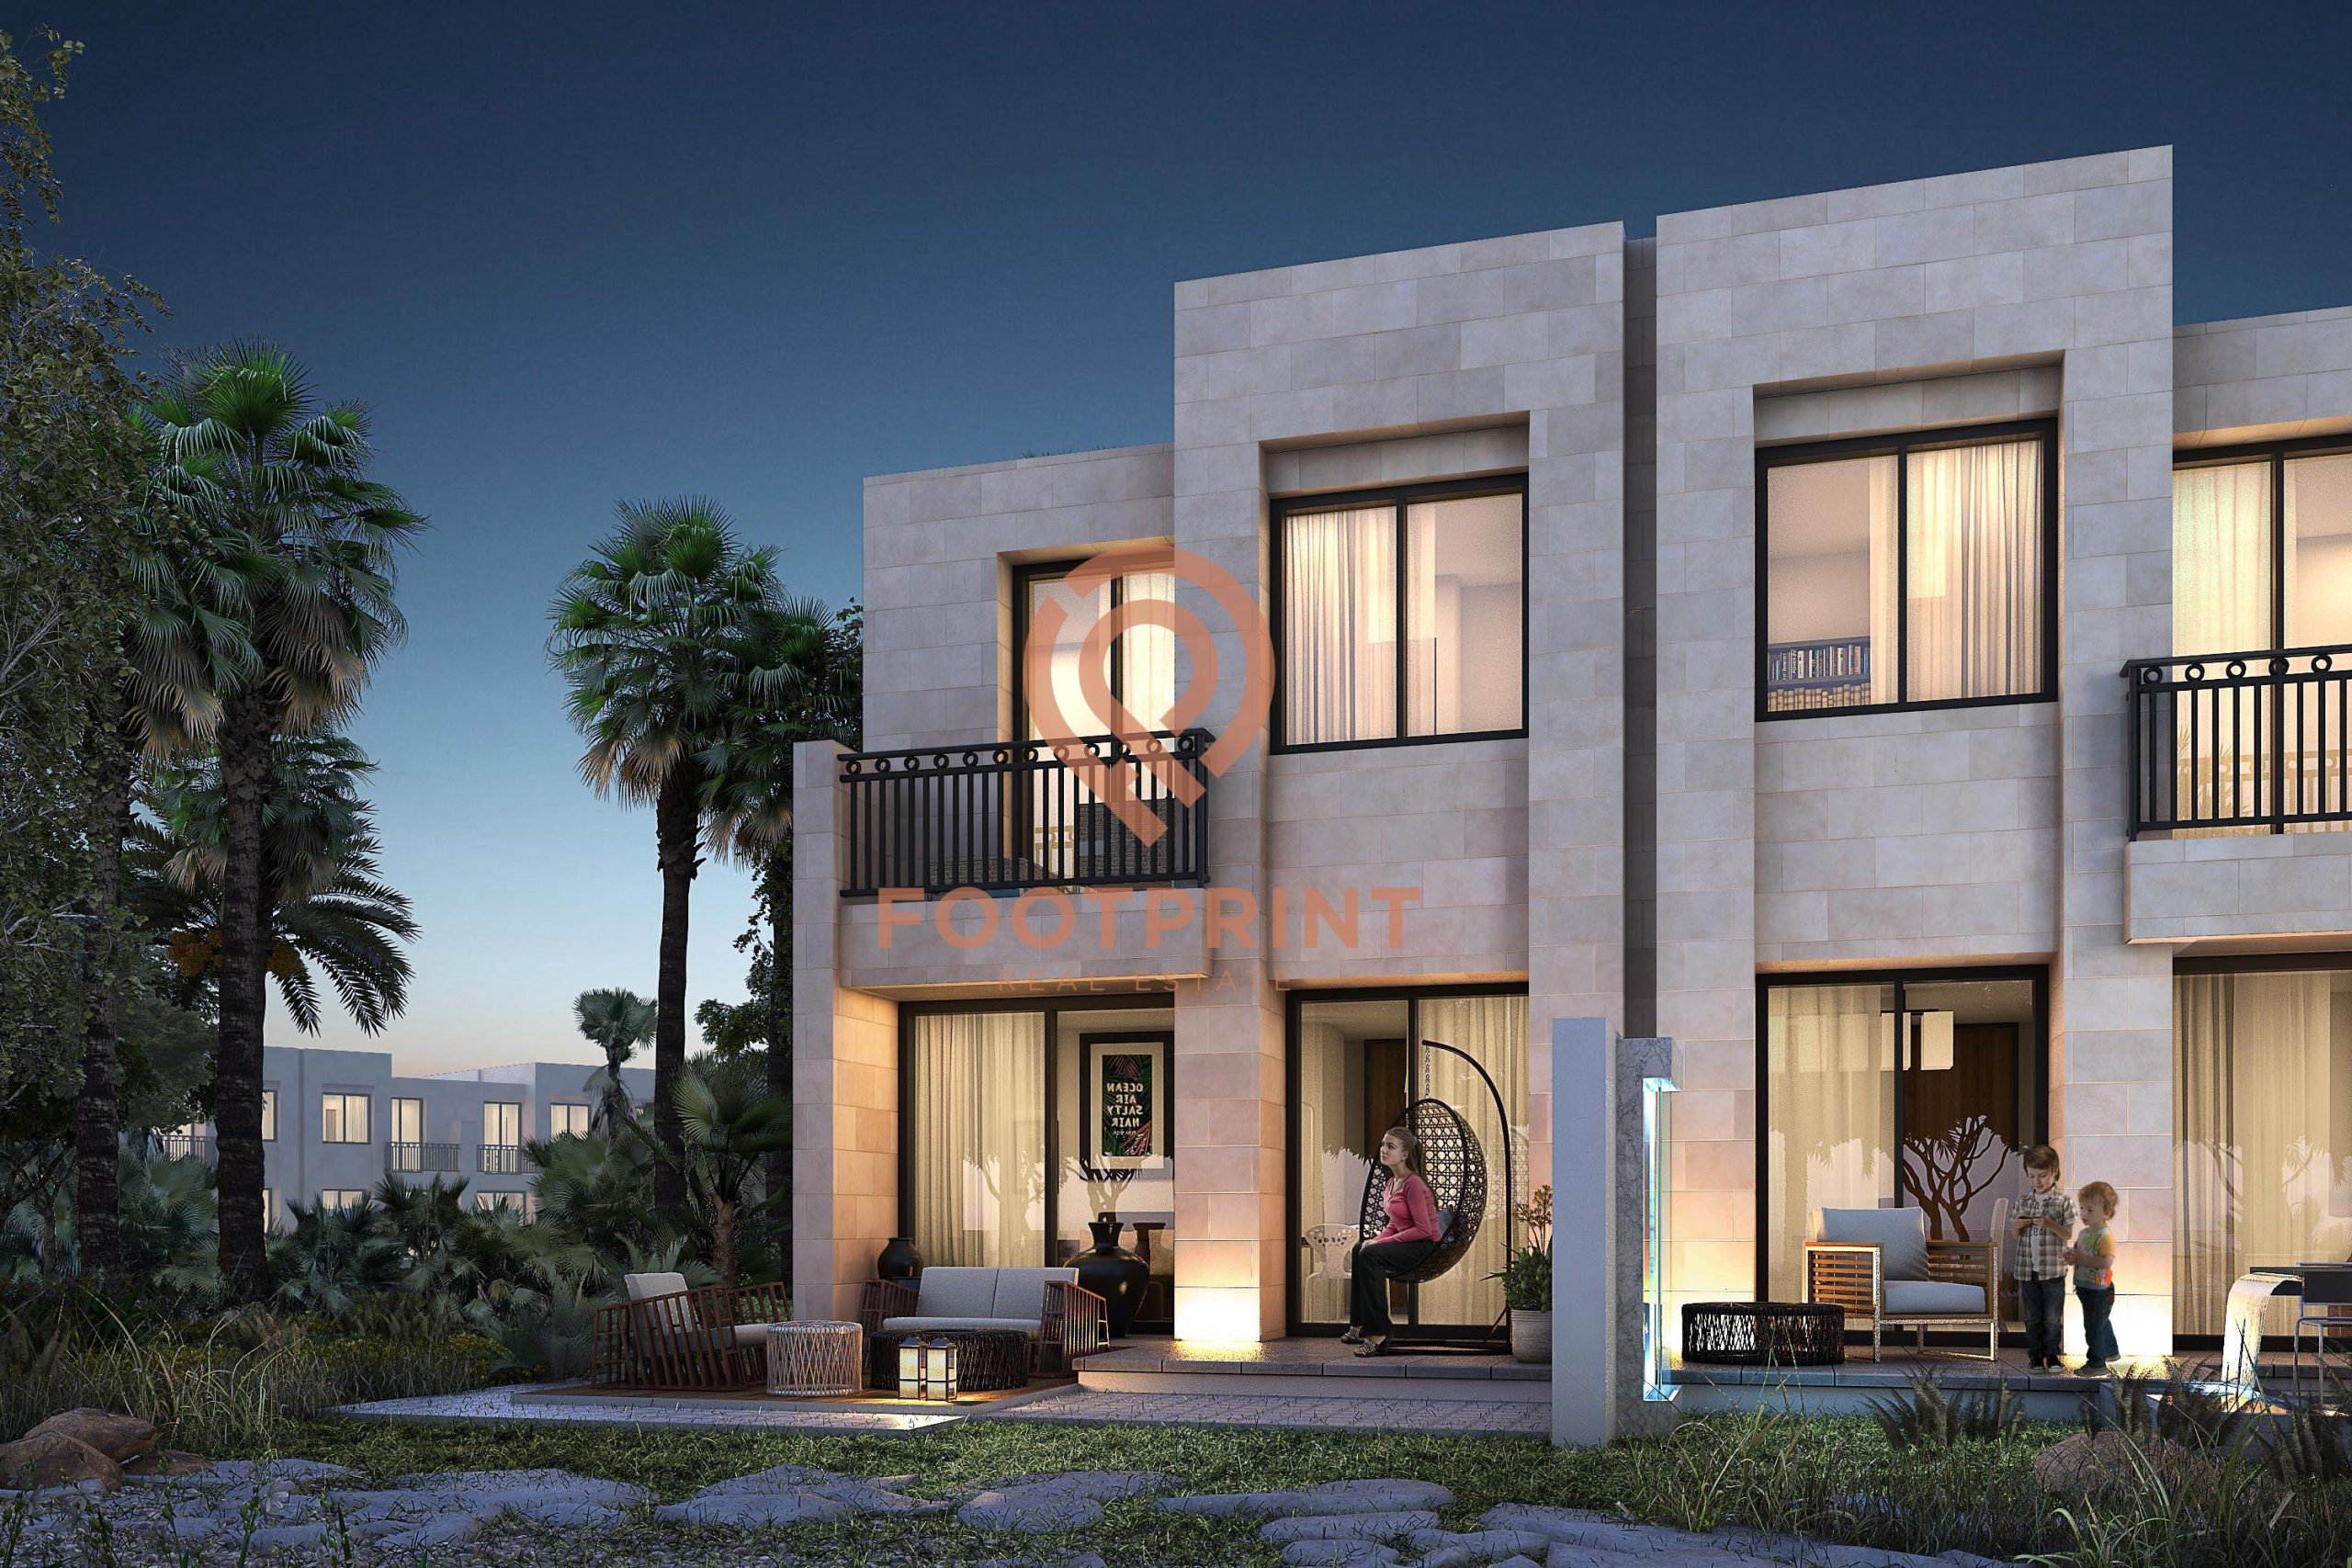 3 Bed Townhouse | AED 876,000/- Only | Golf Course Community